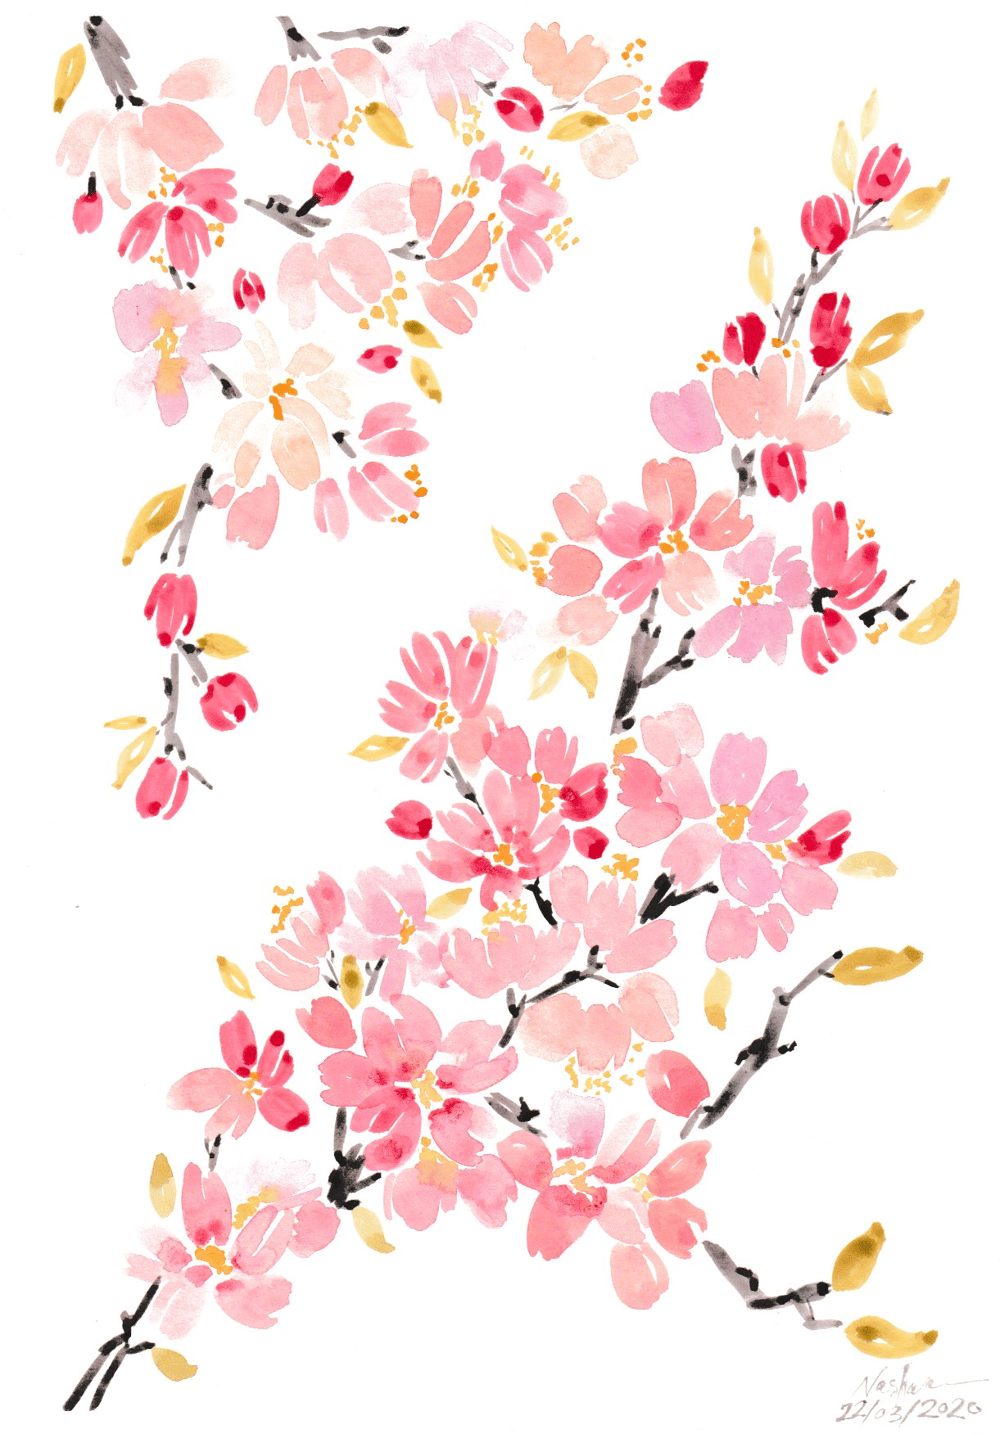 Watercolor Cherry Blossoms - image 4 - student project